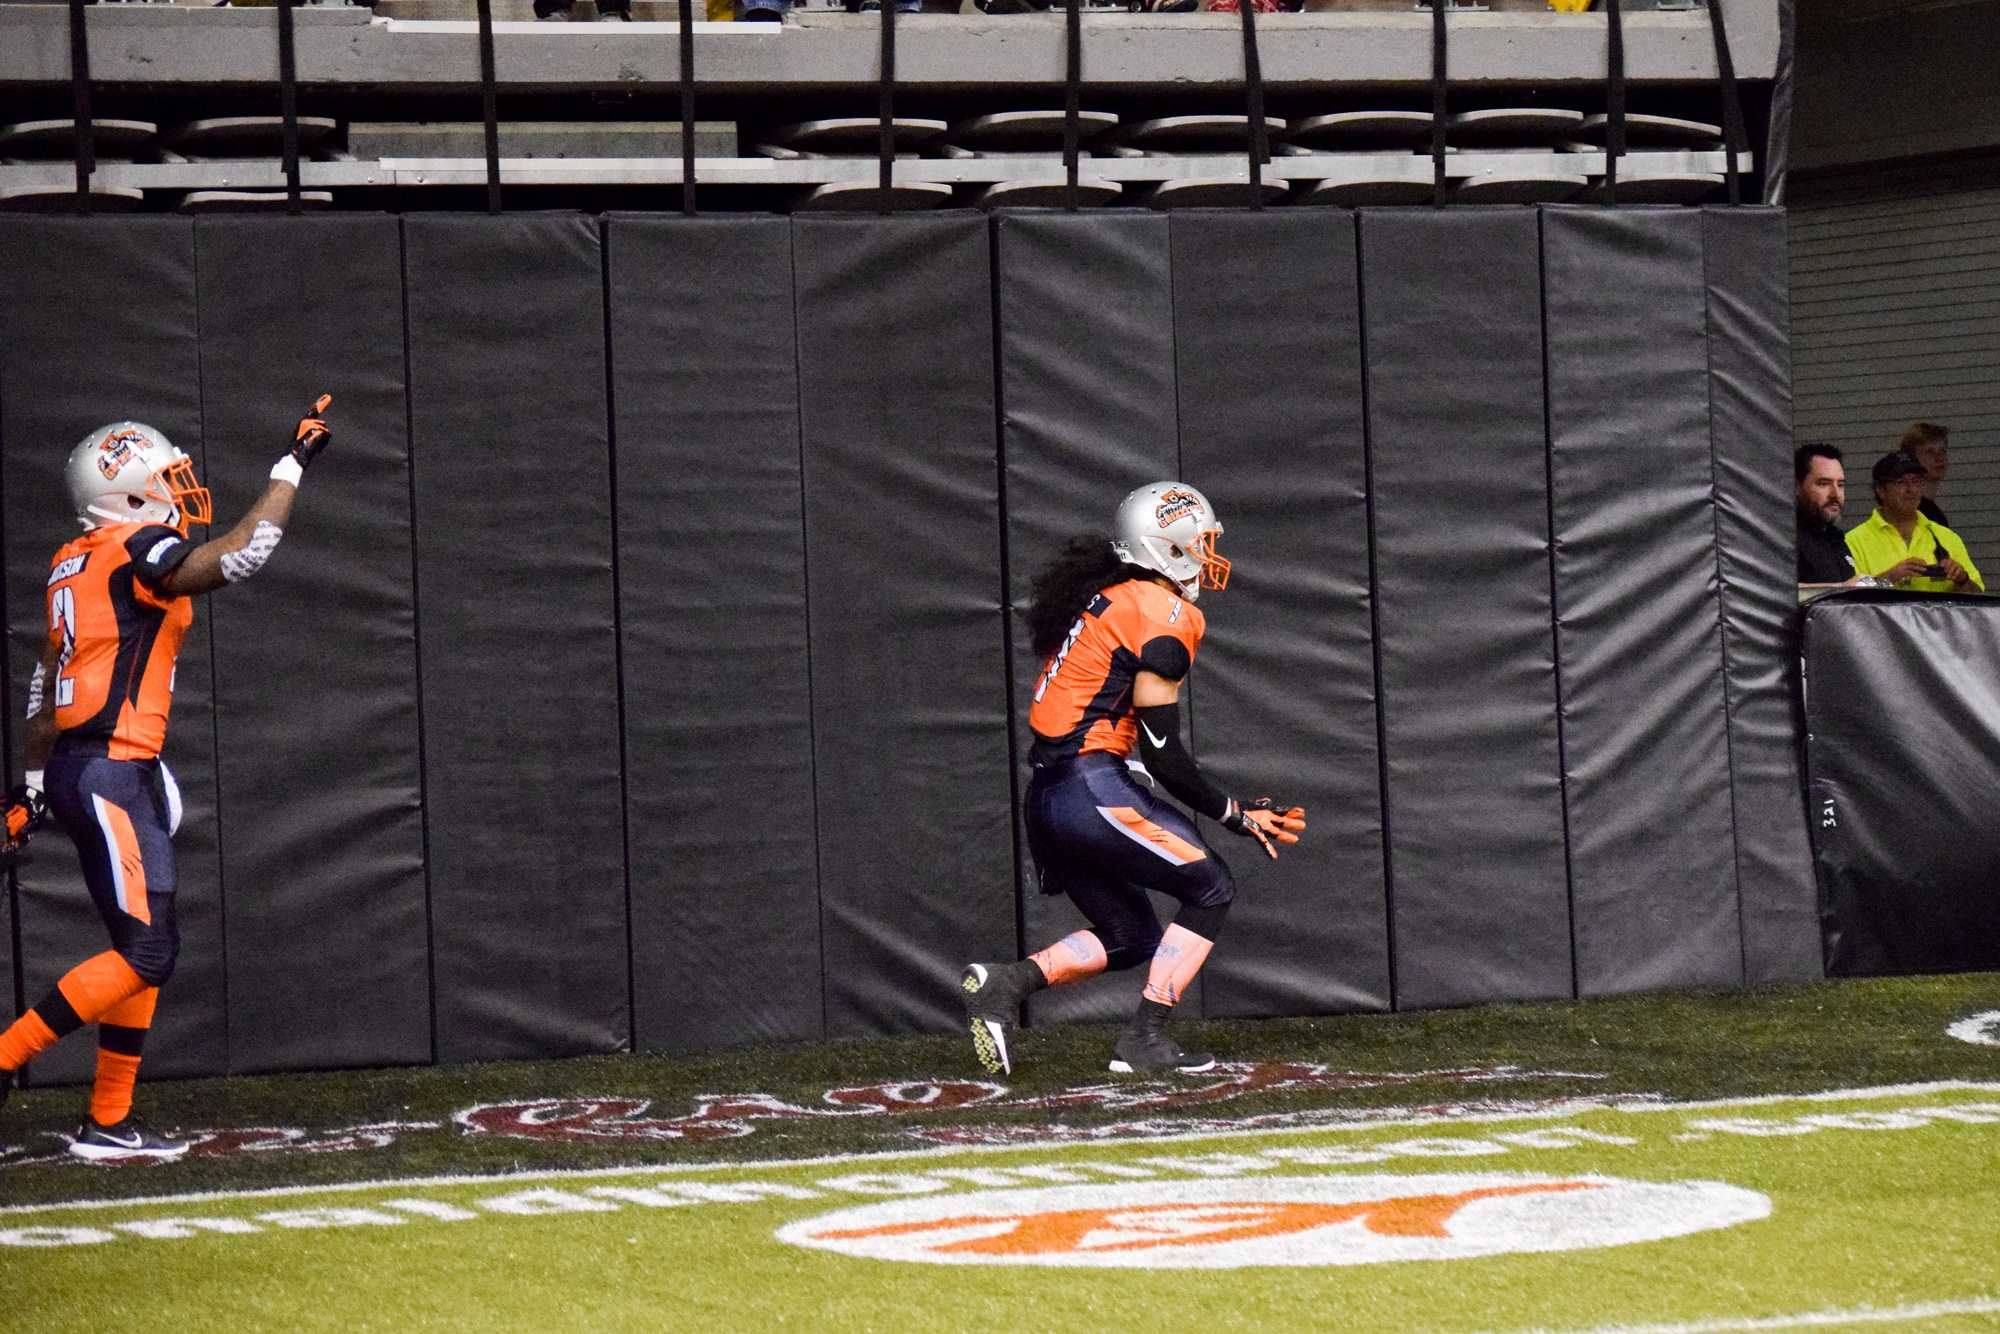 Malachi+Jones+scoring+a+touchdown+during+the+first+ever+Grizzlies+game.+The+Grizzlies+are+an+indoor+football+team.+